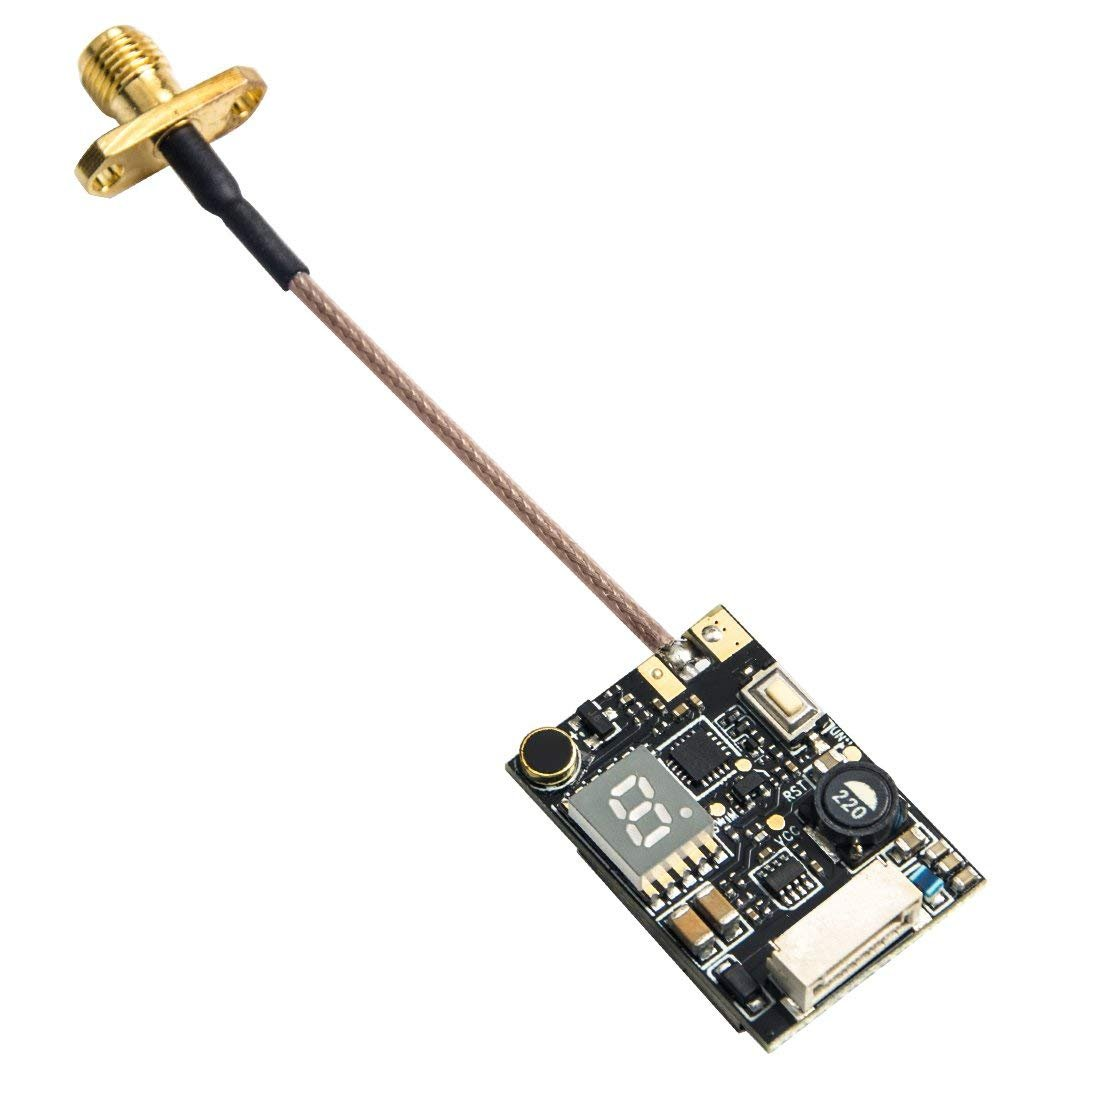 Wolfwhoop Q1-Pro 0.01/25/200/500/800mW Switchable 5.8GHz 37CH FPV Transmitter with Pigtail Antenna and FC Uart Support OSD Configuring via Betaflight Flight Controller by Wolfwhoop